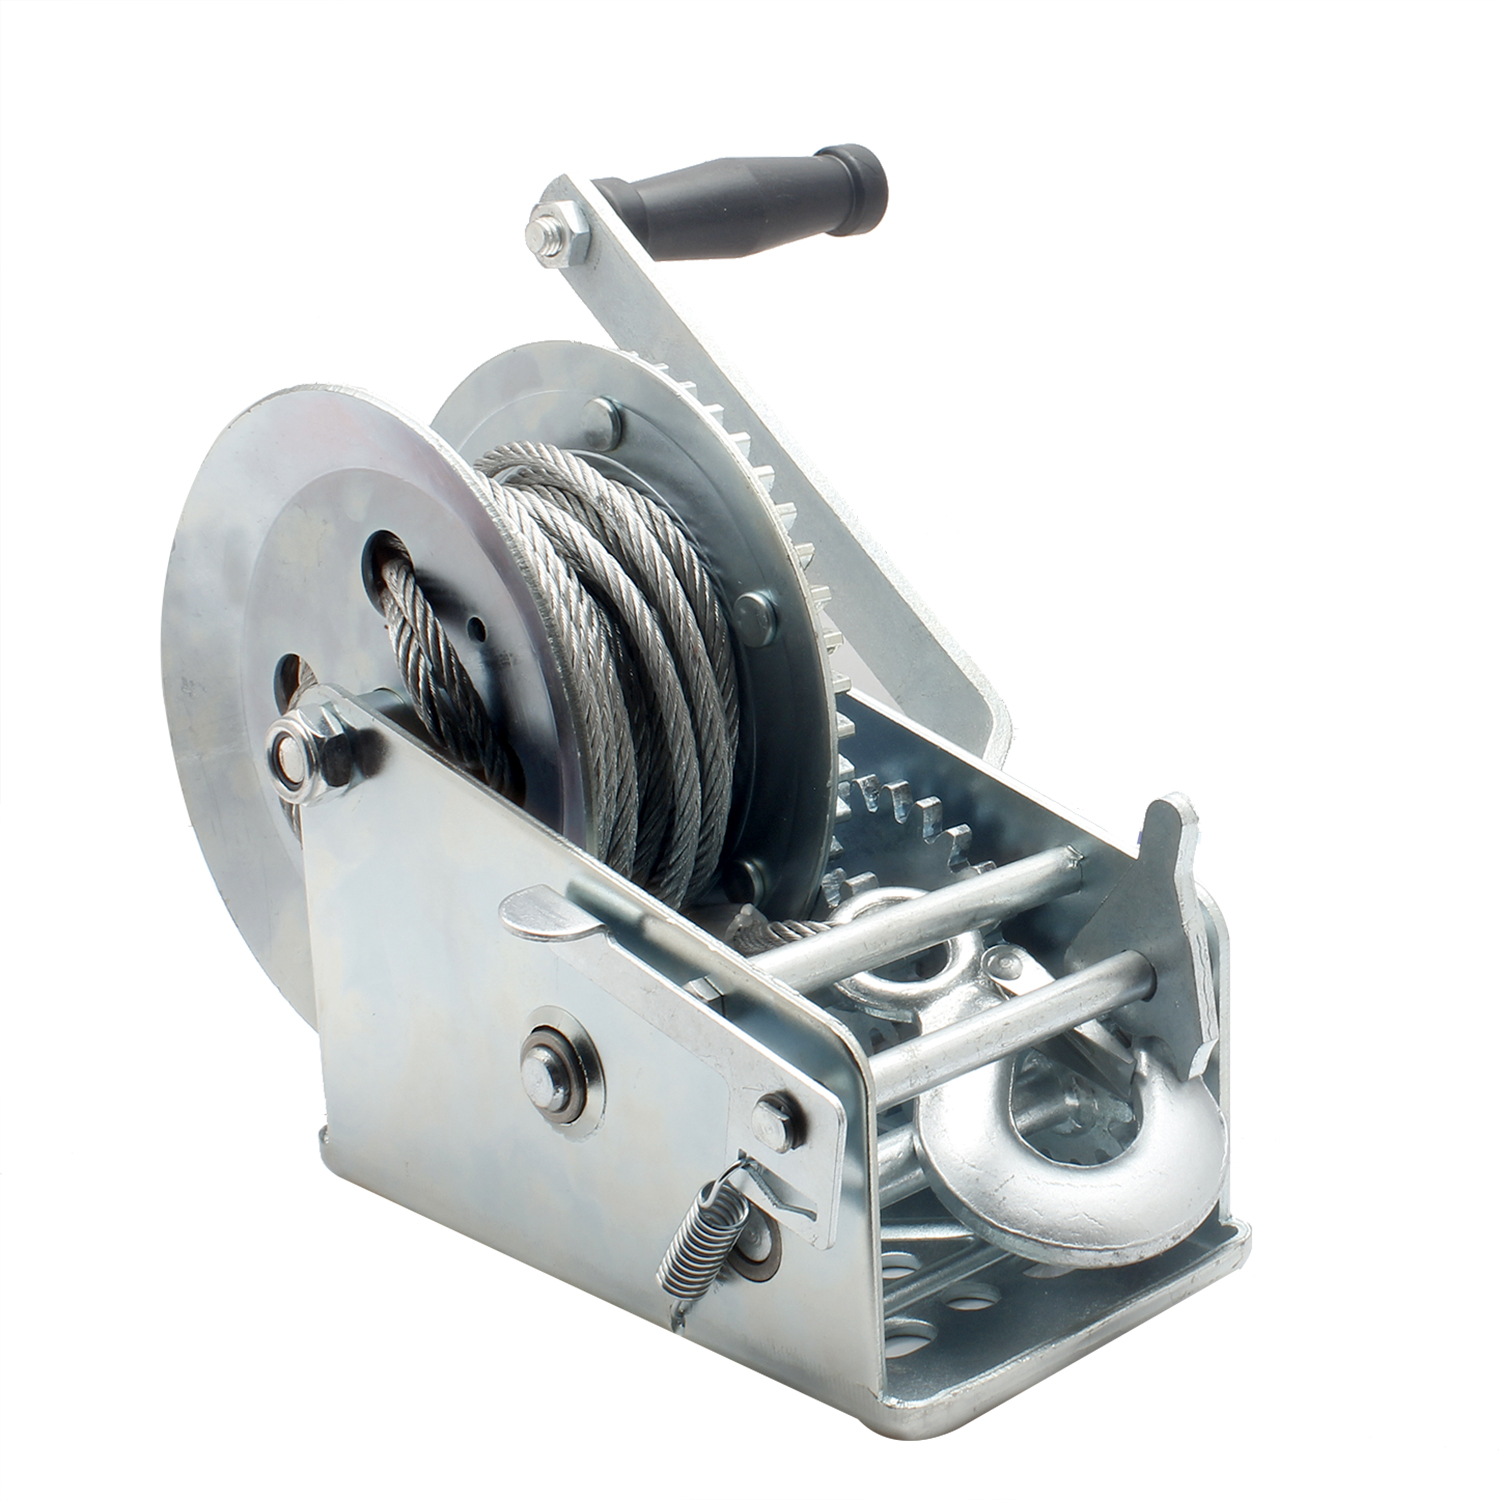 3500lbs Dual Gear Hand Winch Hand Crank Manual Boat ATV RV Trailer 33ft Cable Alloy Steel Hand Winch